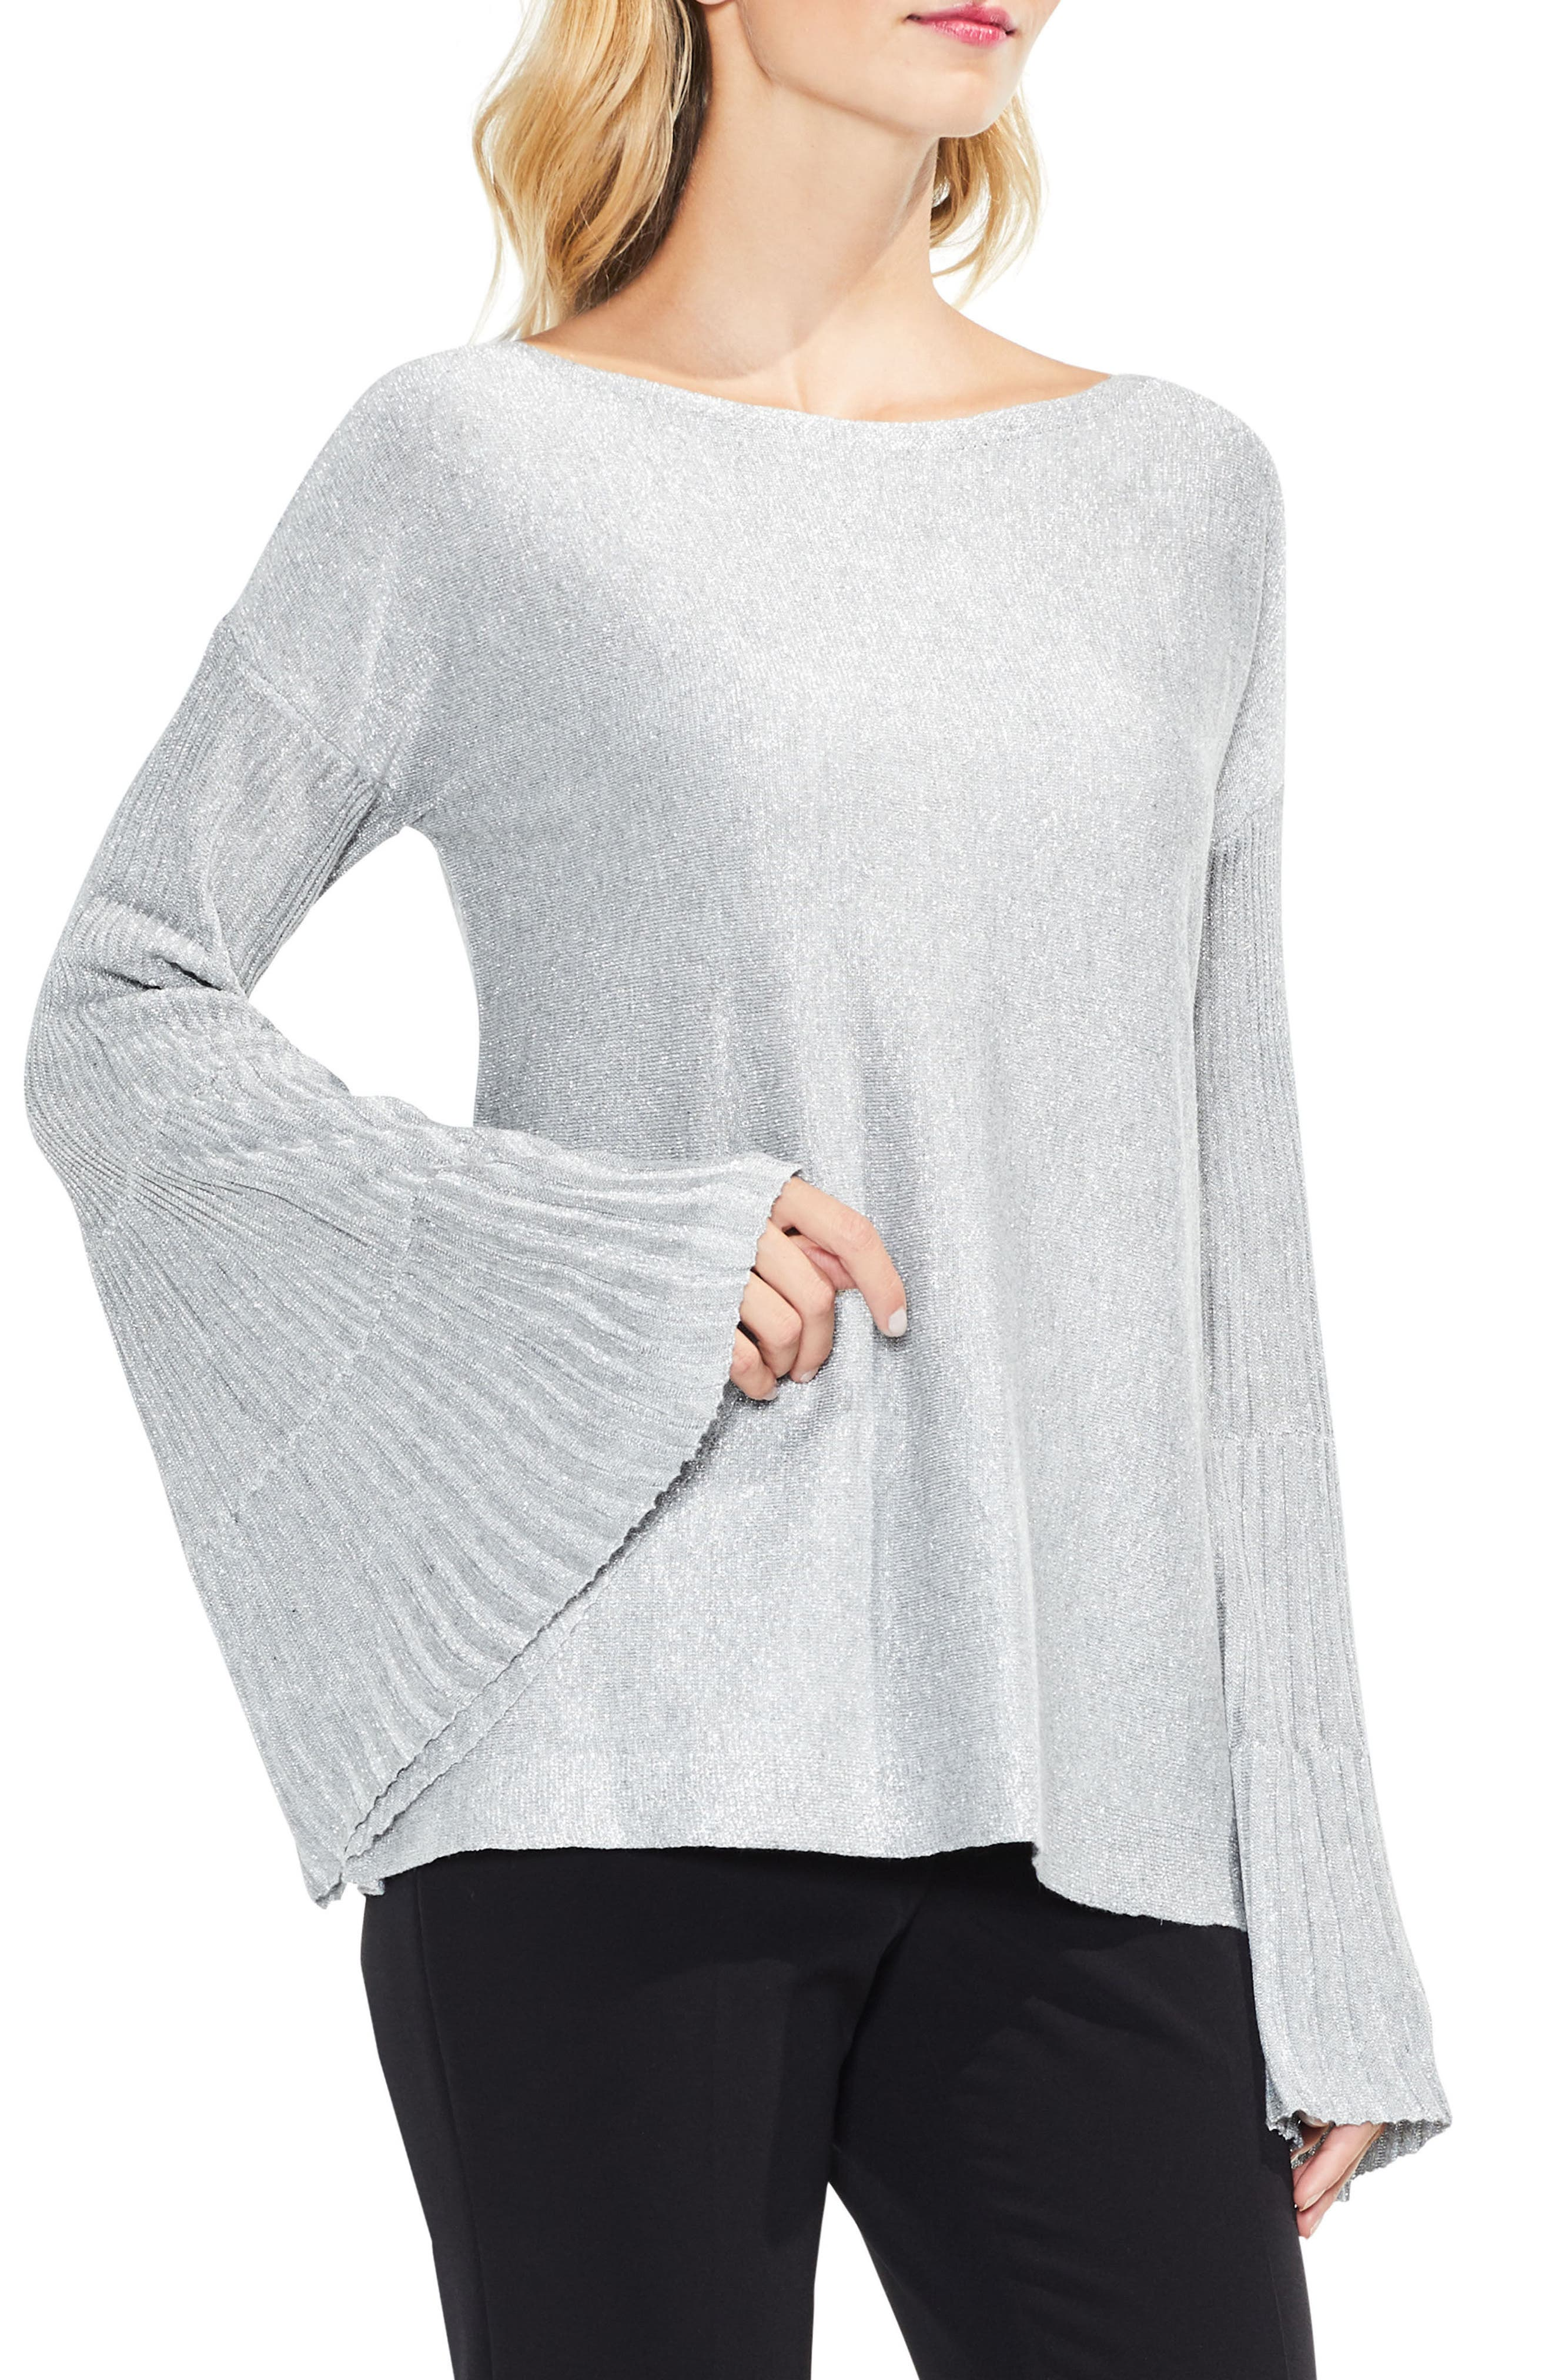 Main Image - Vince Camuto Sparkly Bell Sleeve Sweater